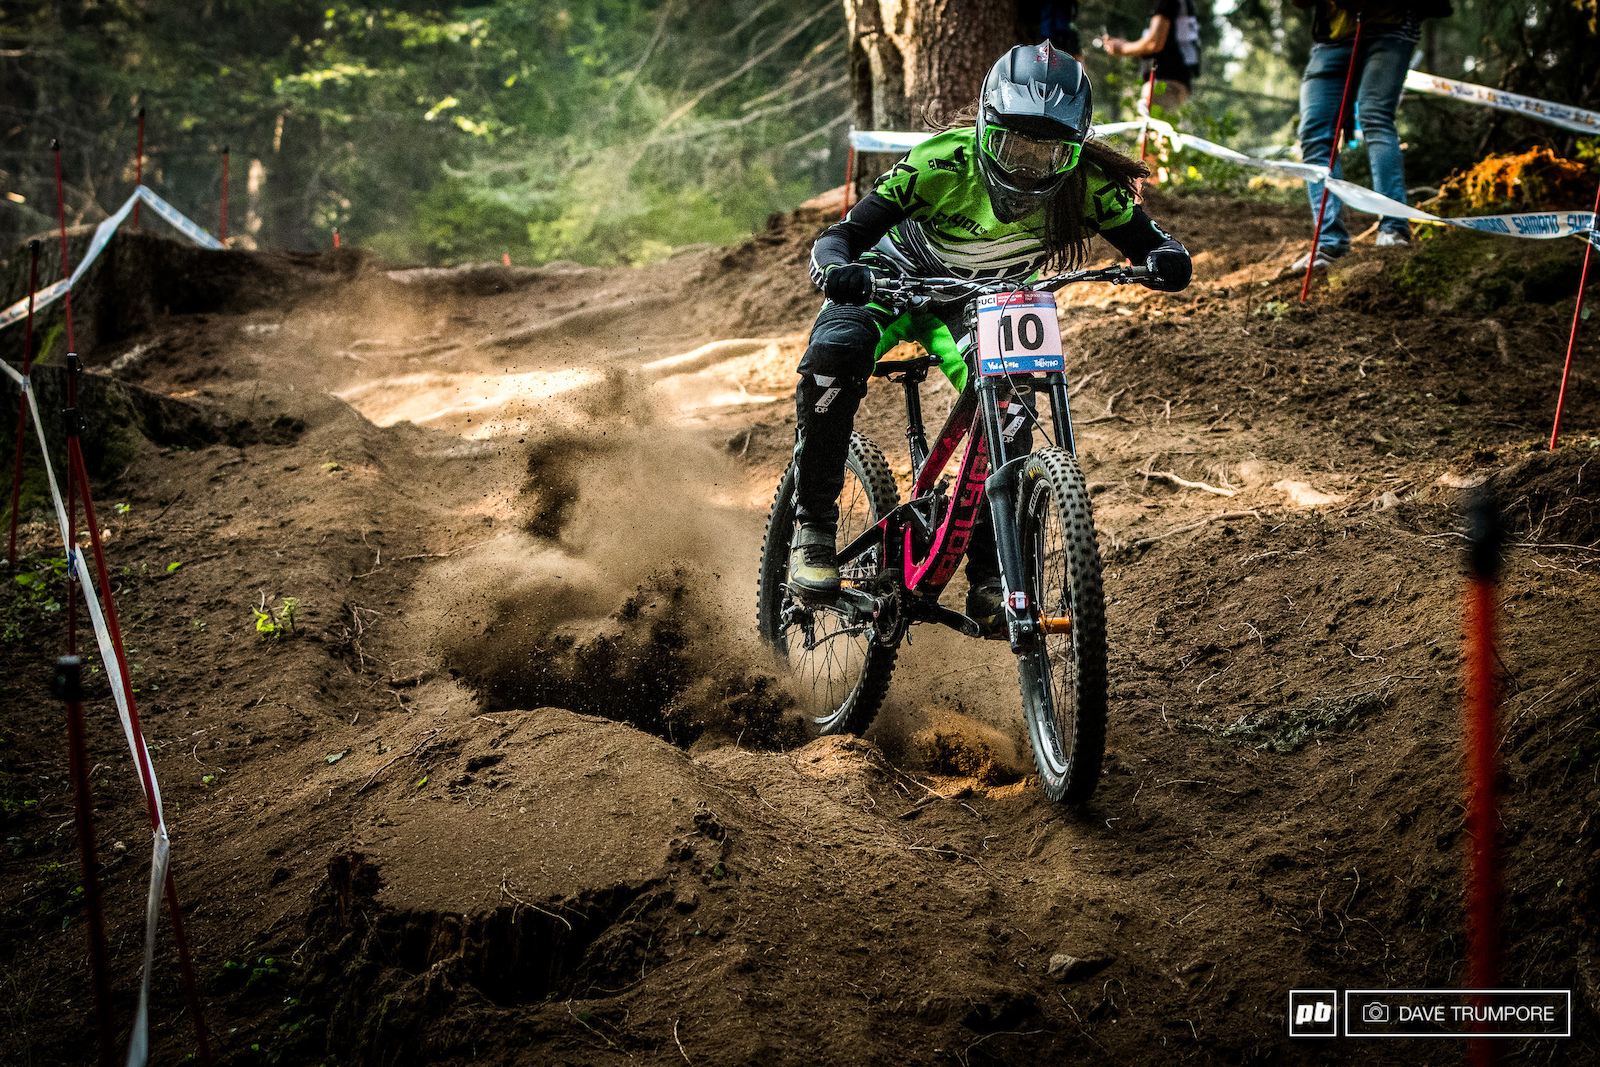 Vaea Veerbeck drifts it through the rough and loamy chute near the top of the track.